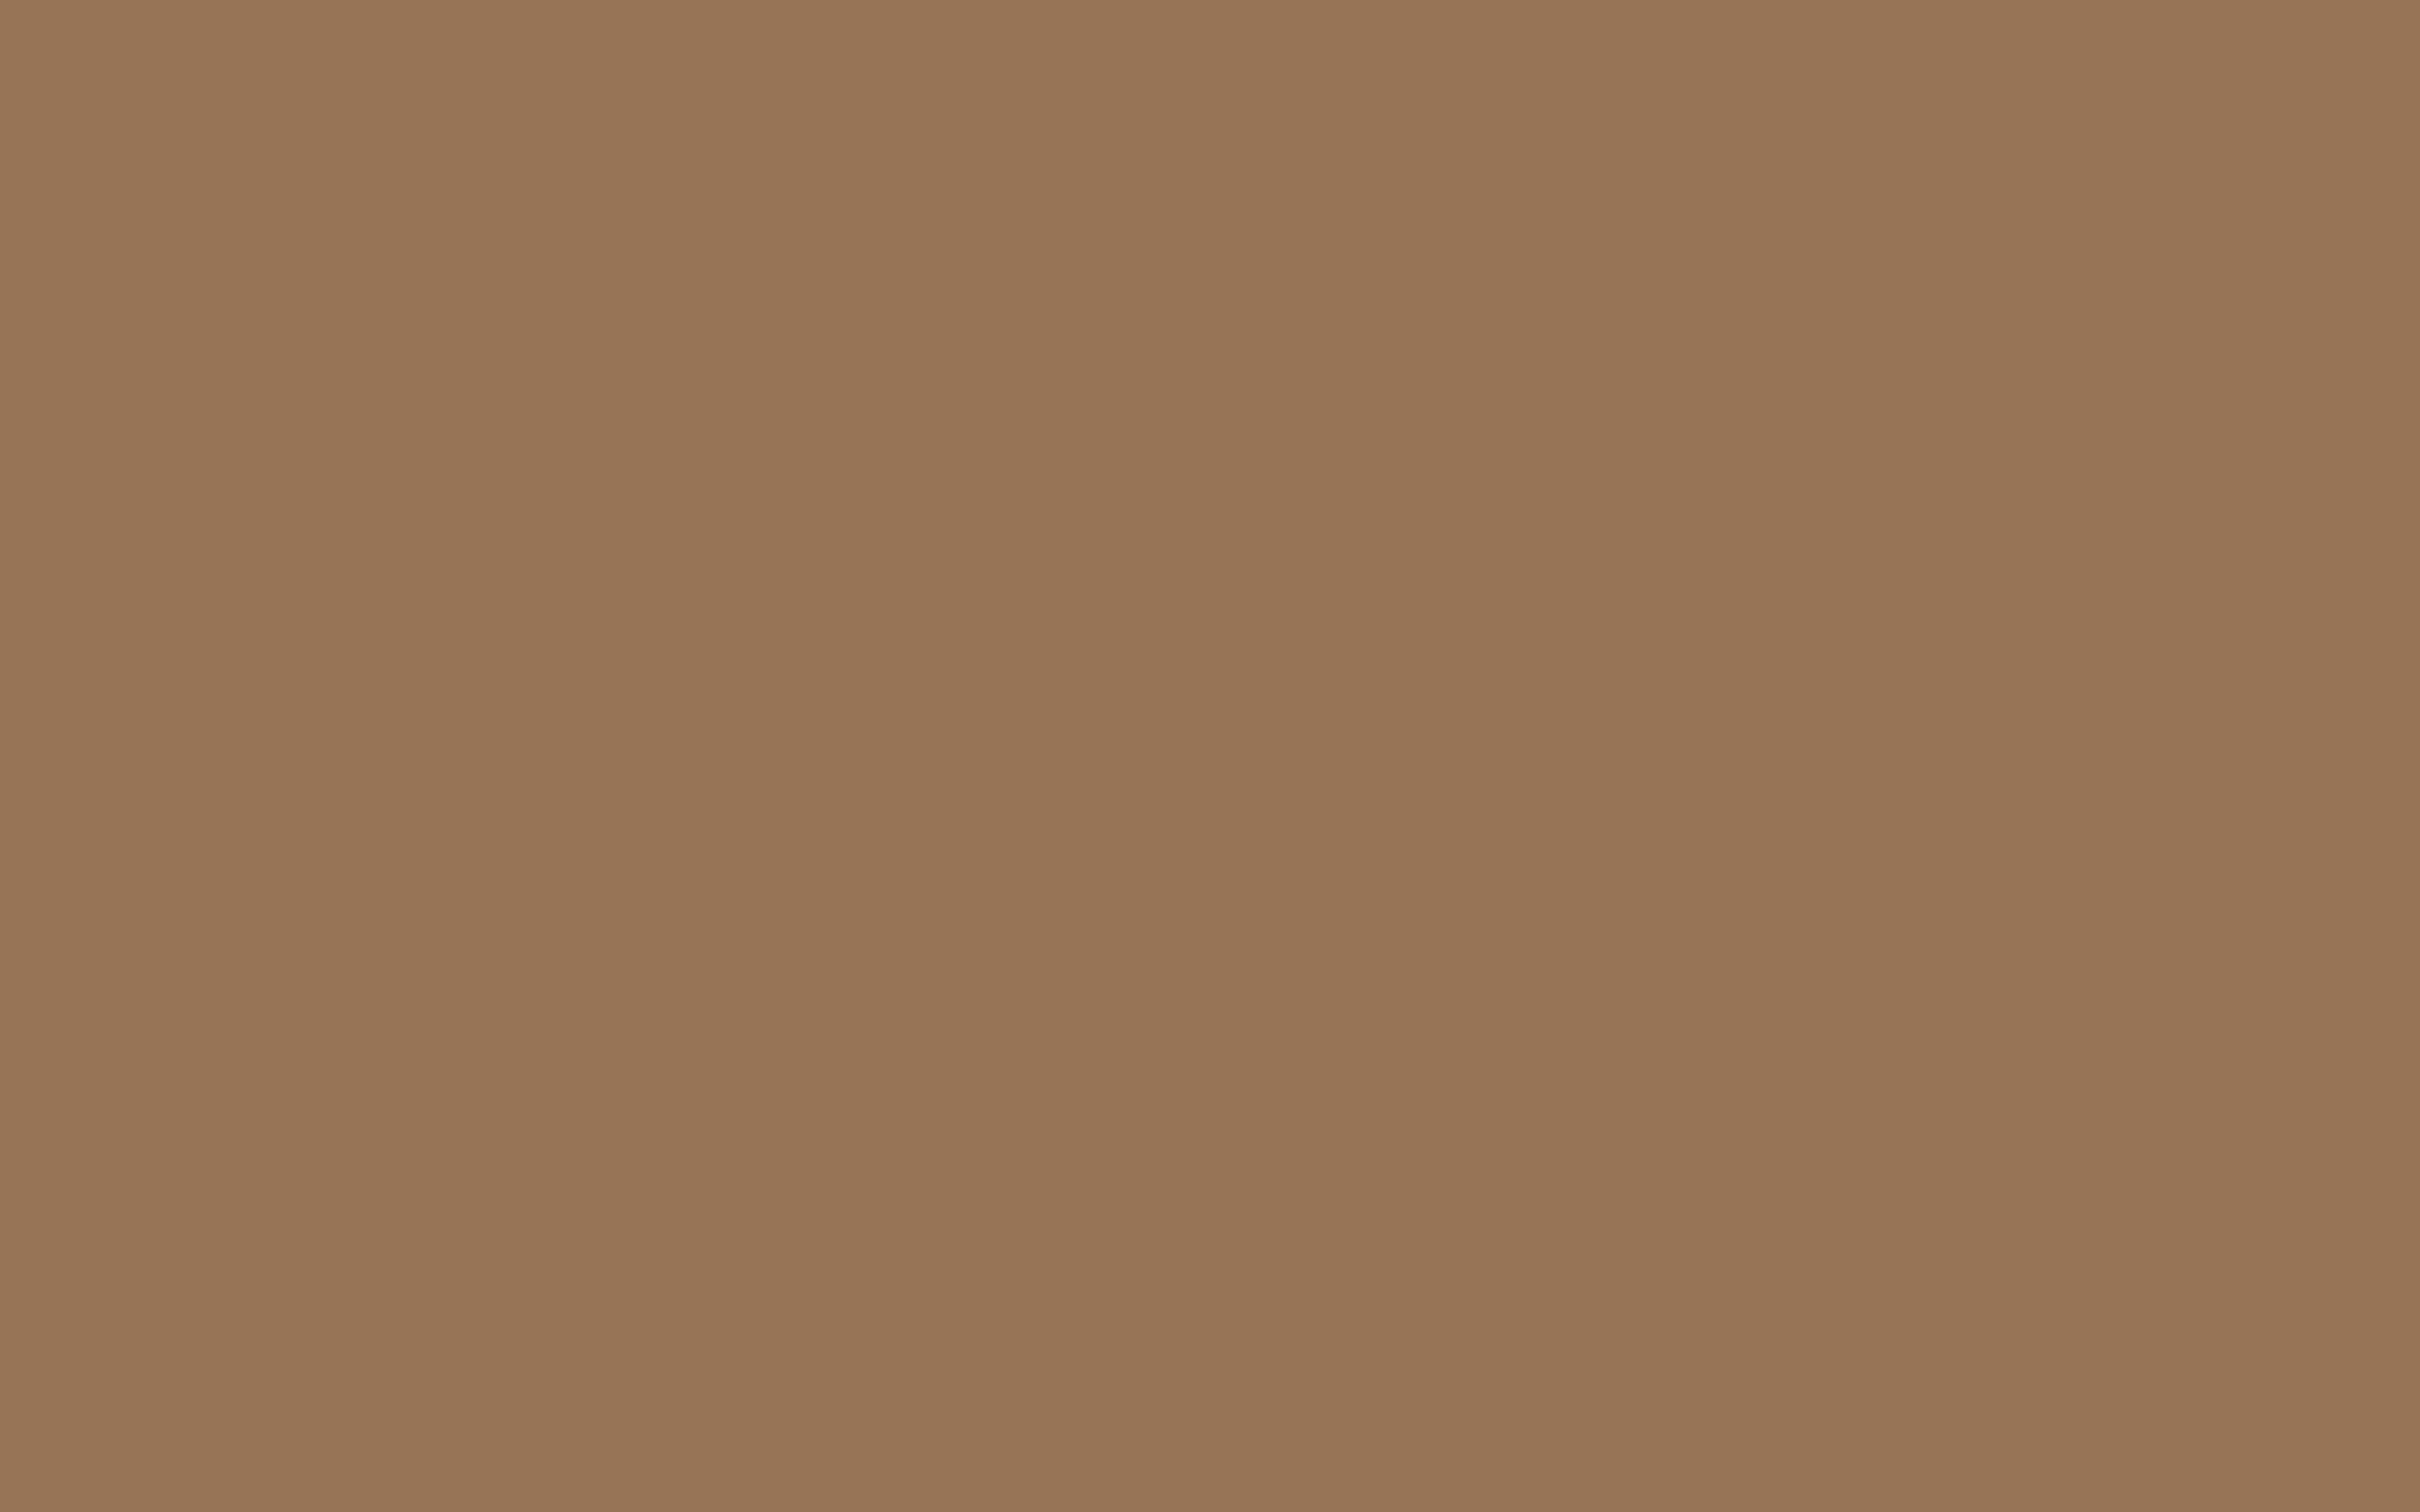 2880x1800 Liver Chestnut Solid Color Background